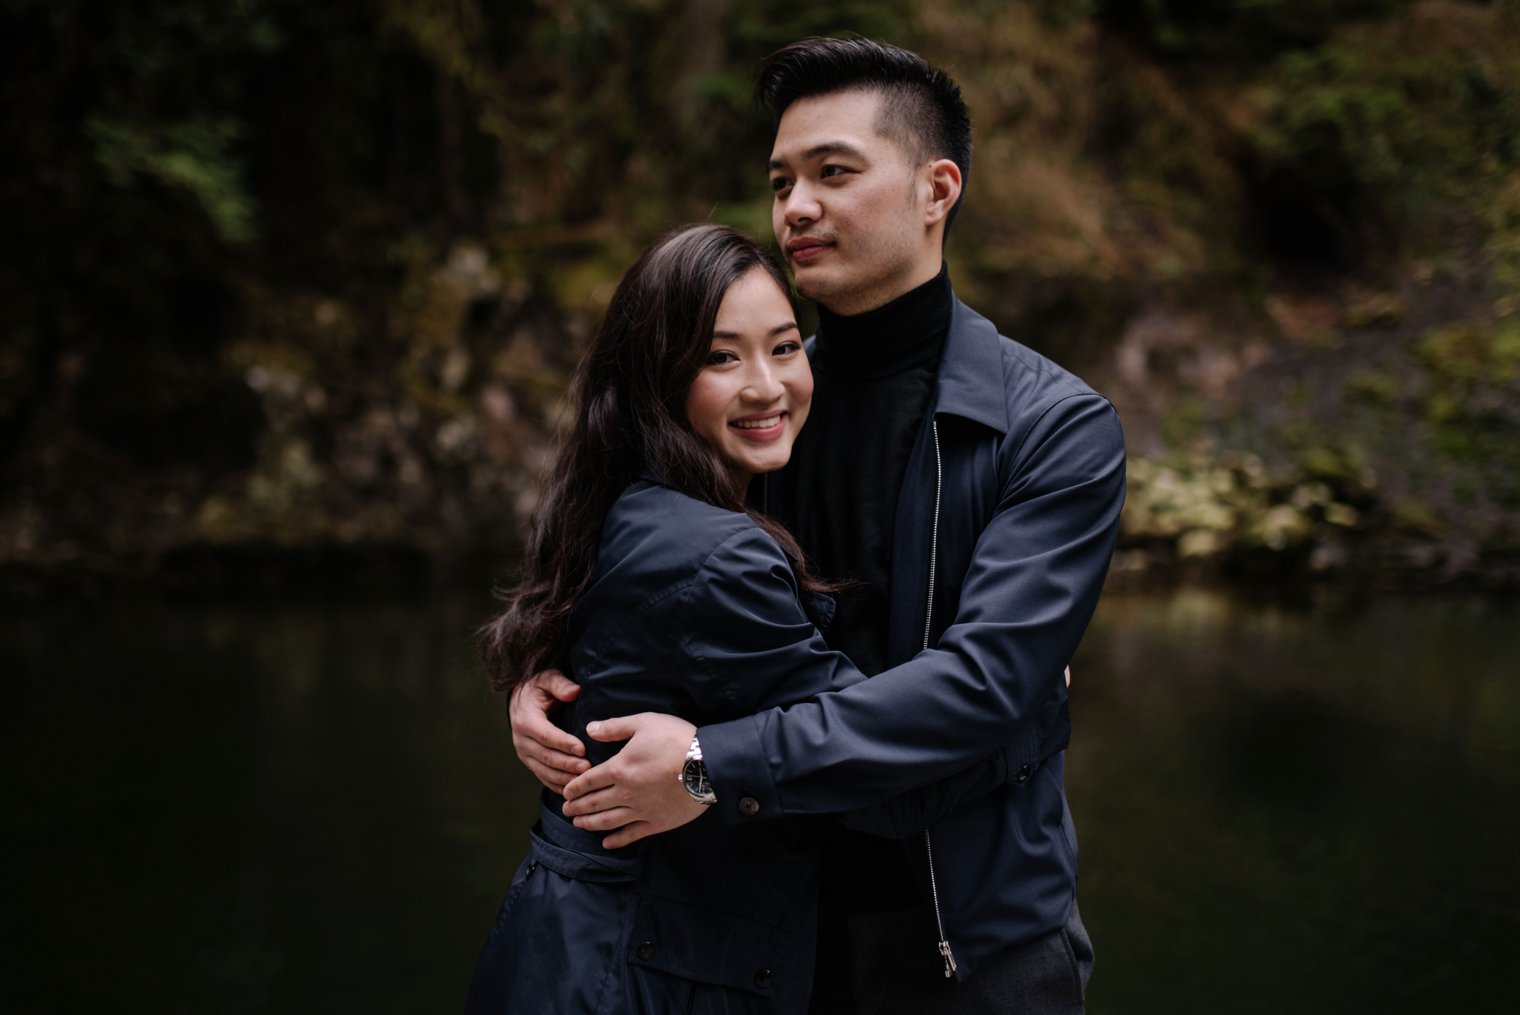 north vancouver forest engagement